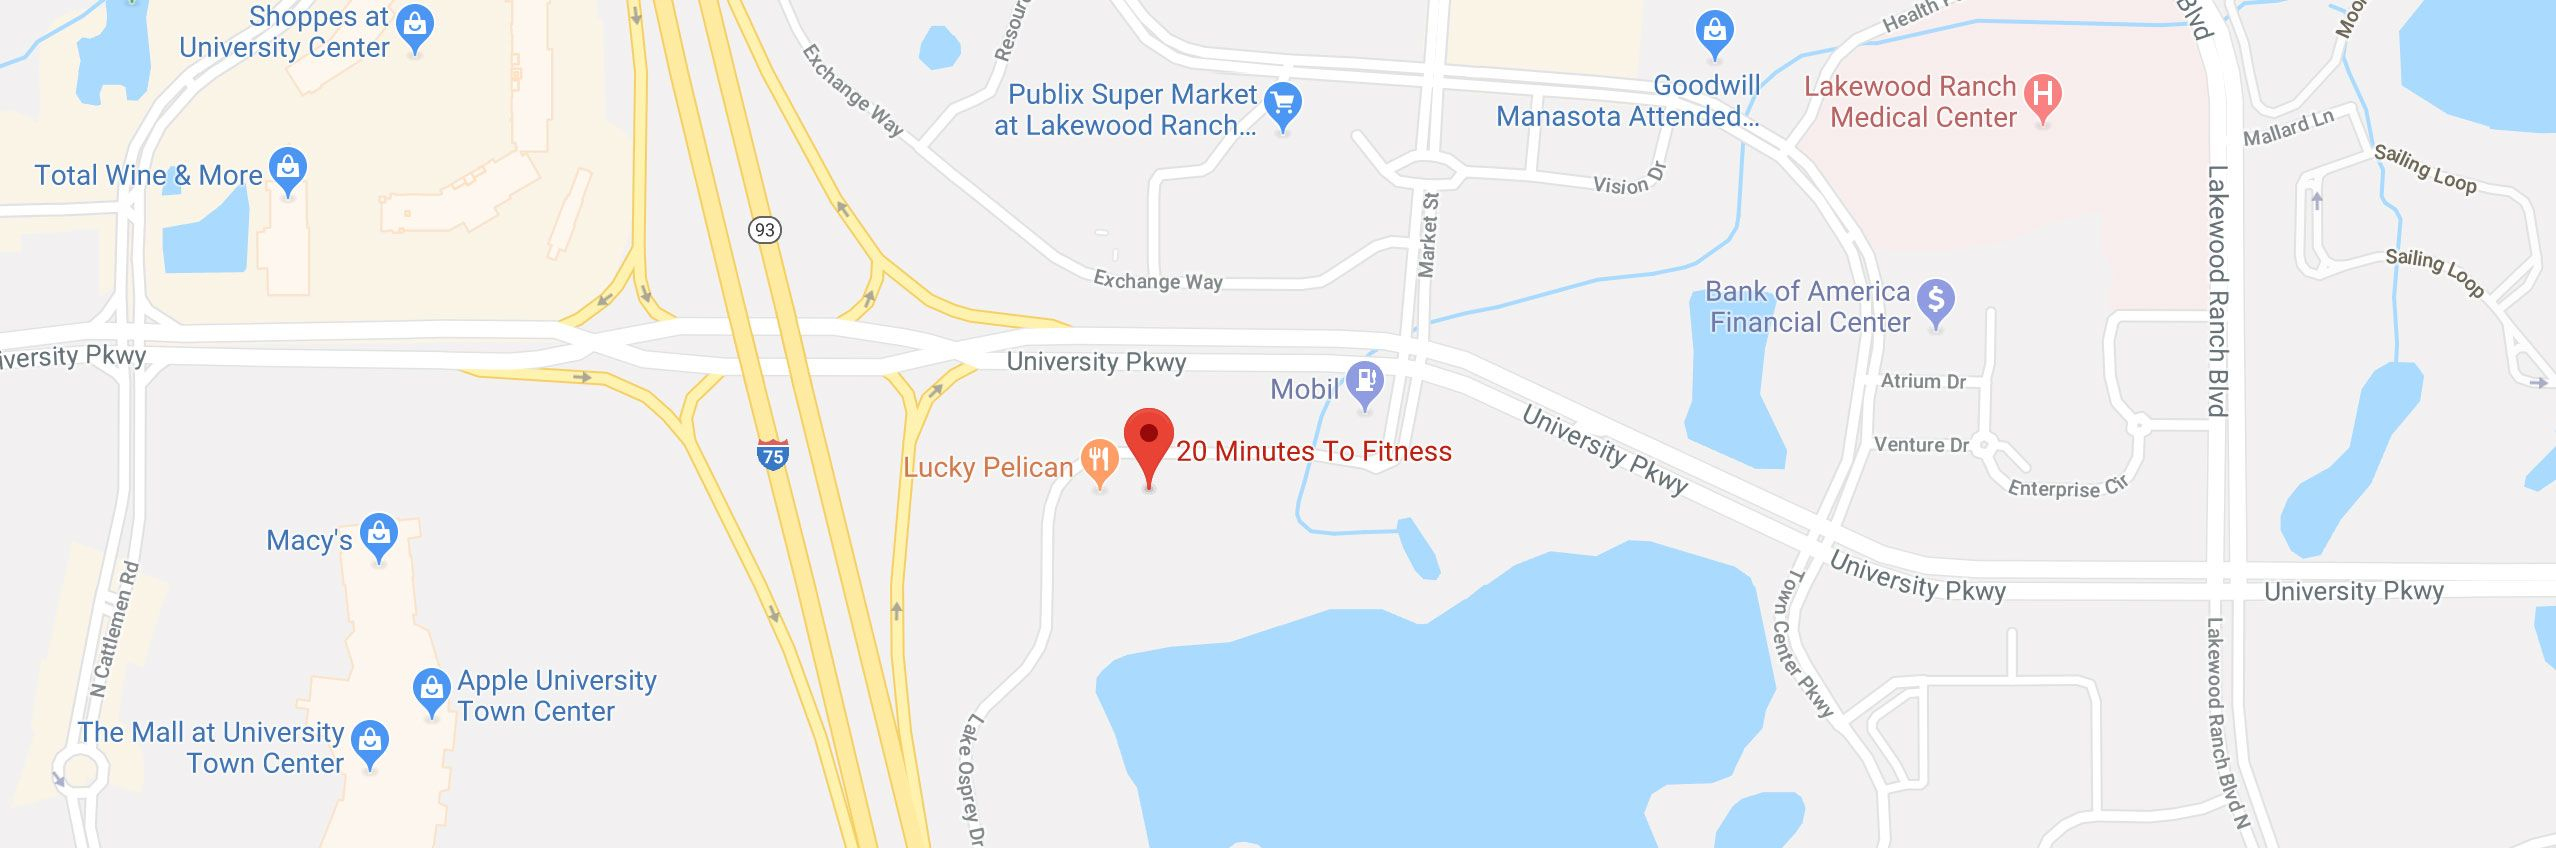 Fitness Center In Lakewood Ranch, Fl | No-Contract Gym | 20 Minutes - Lakewood Ranch Map Florida